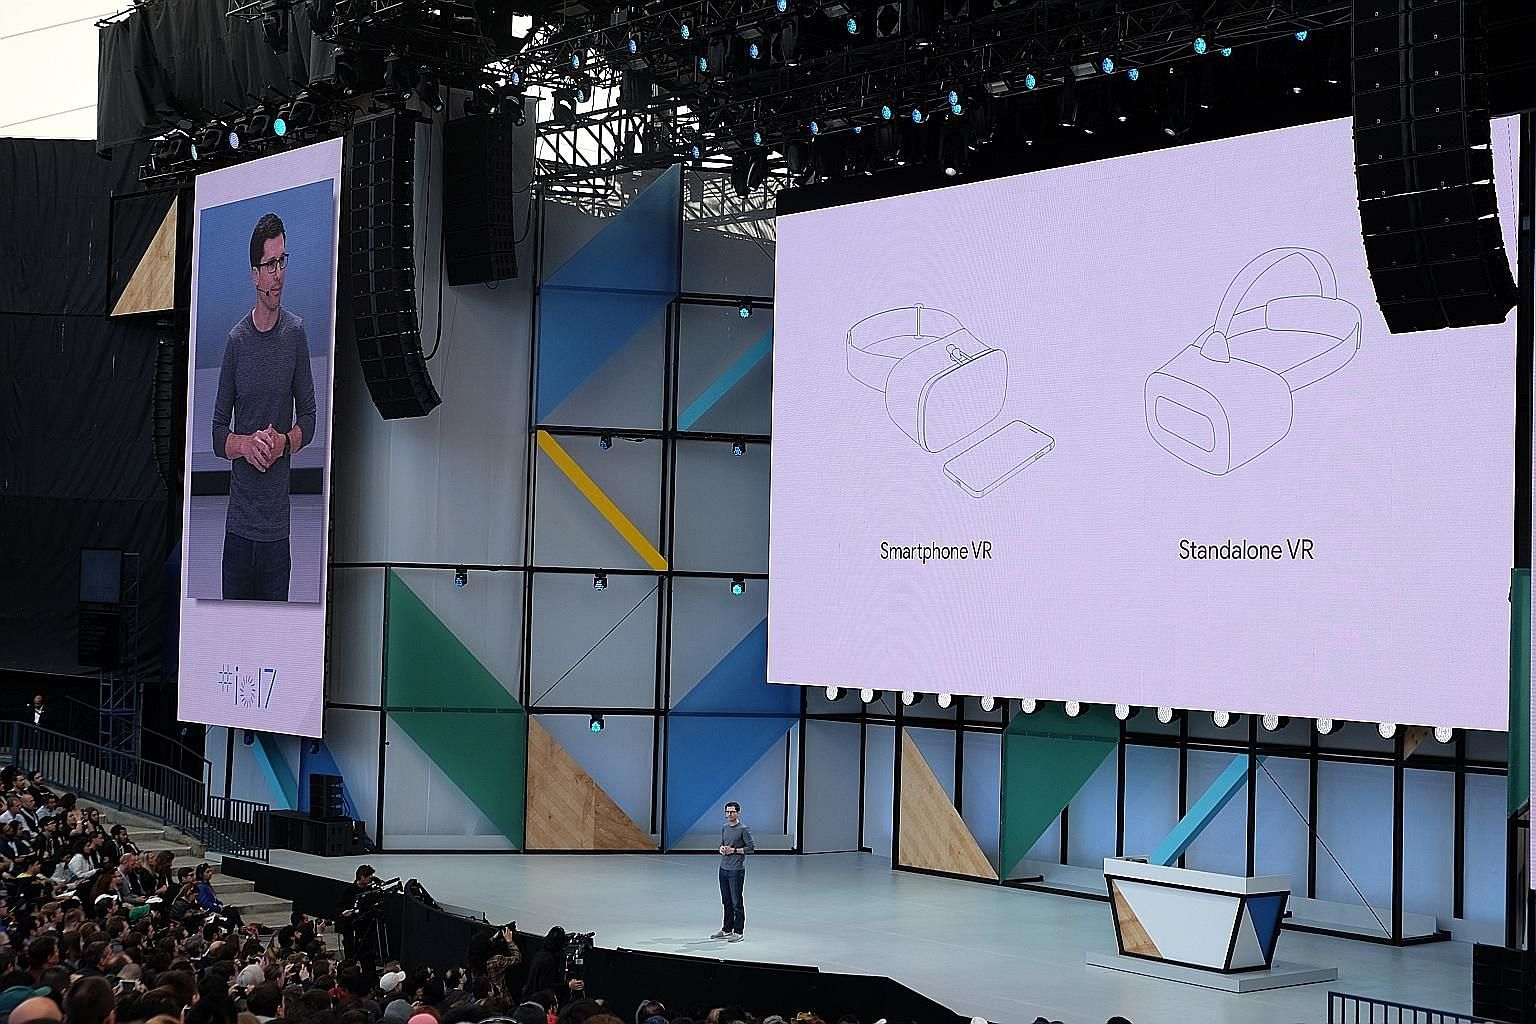 Google's vice-president of virtual and augmented reality, Mr Clay Bavor, announcing the new standalone VR headset at the Google I/O 2017 developer conference last week.